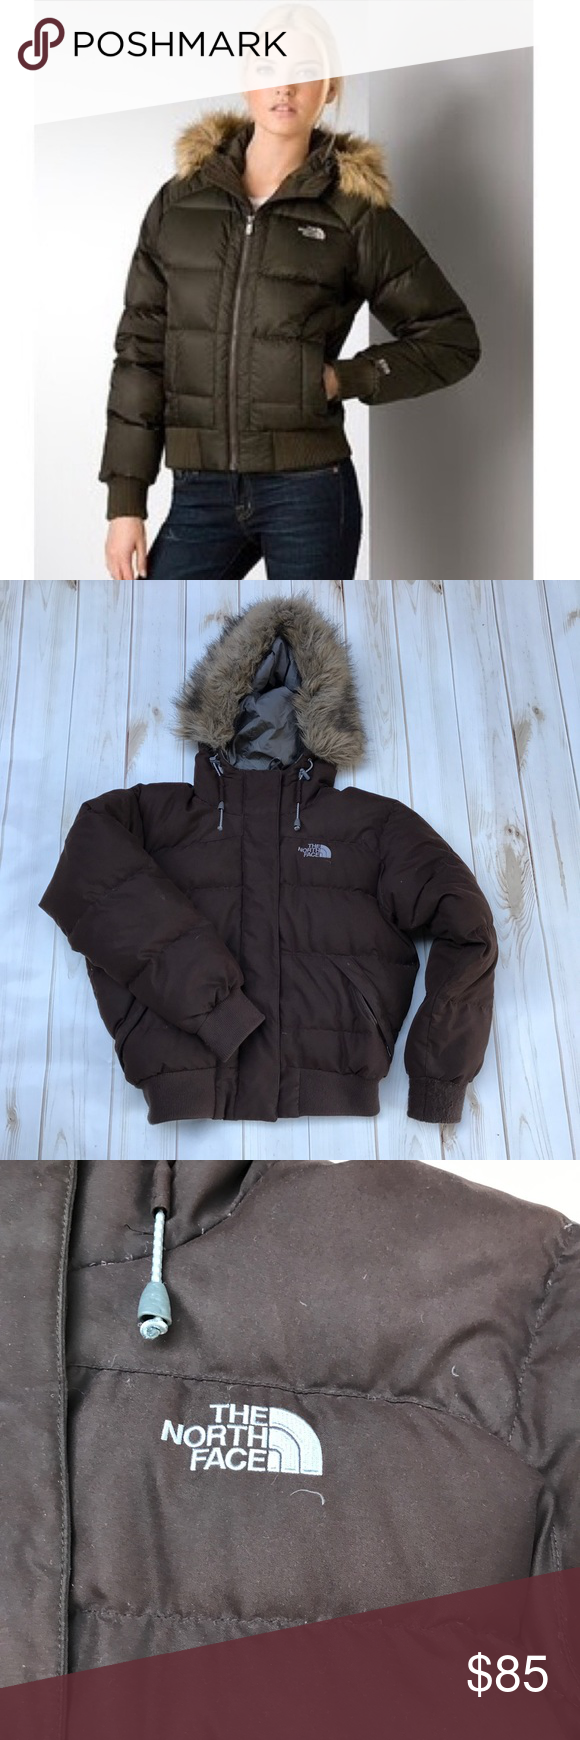 The North Face 550 Down Jacket Fashion Clothes Design Fashion Trends [ 1740 x 580 Pixel ]